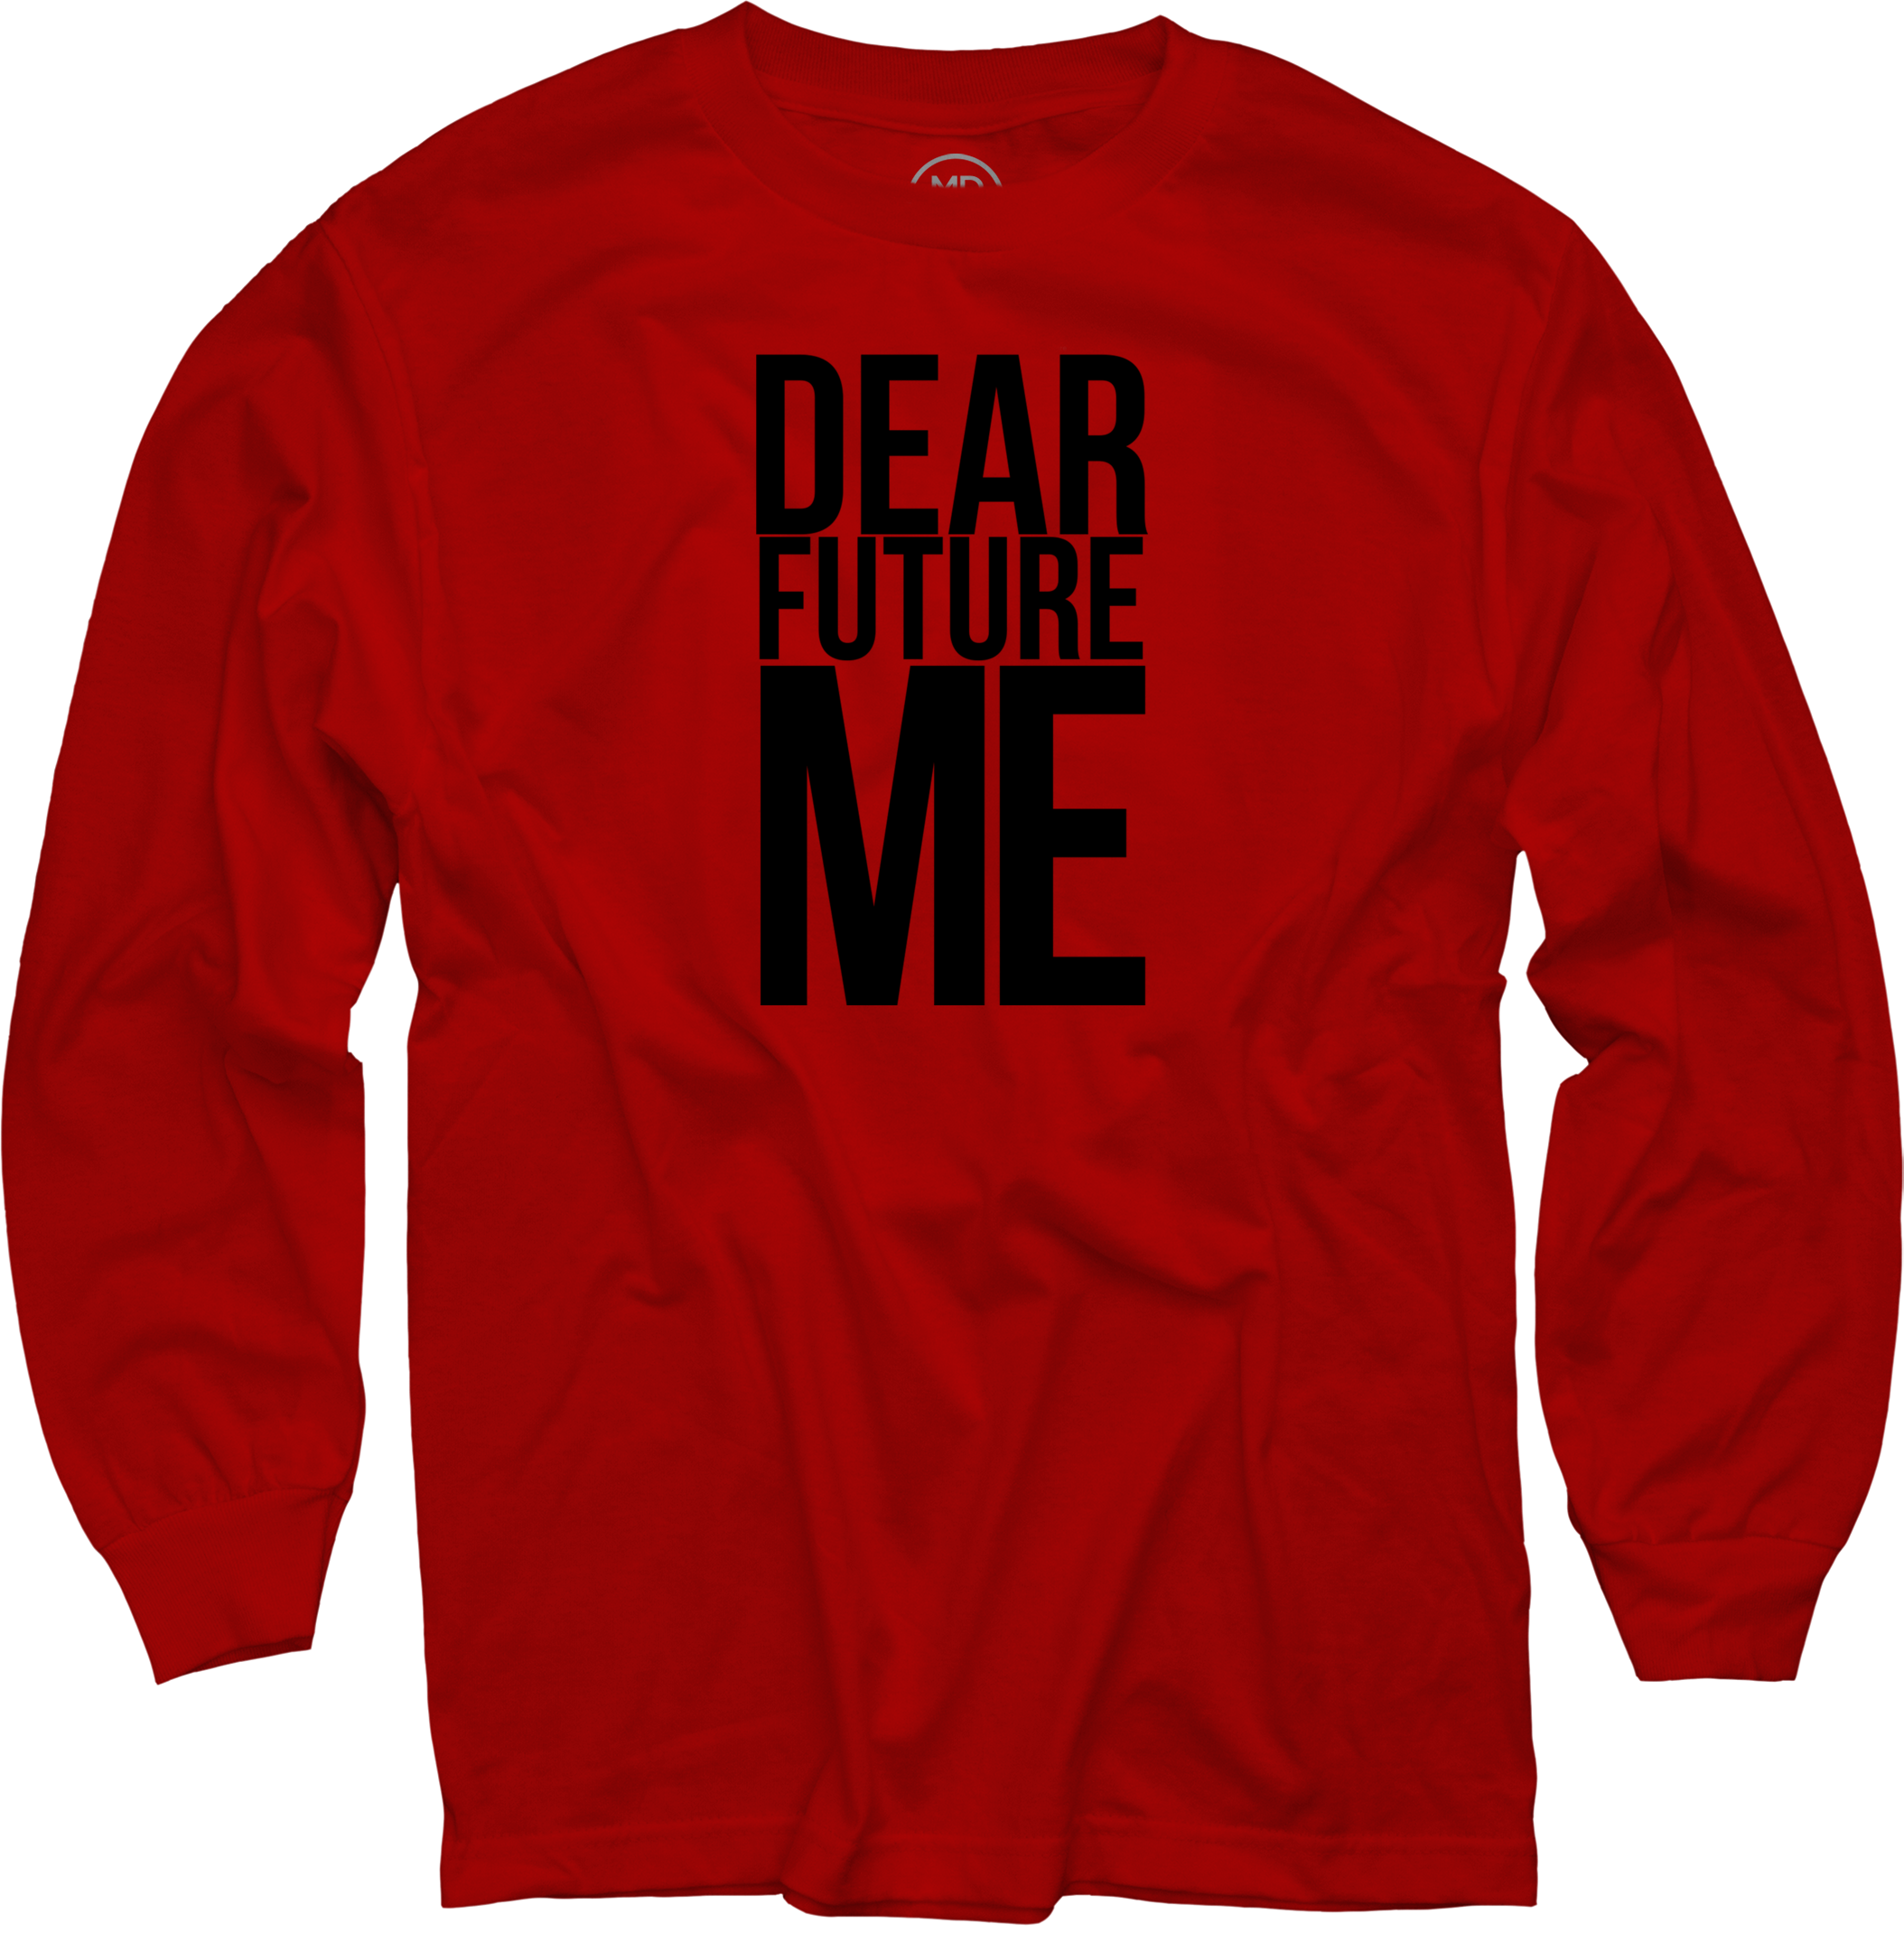 Dear Future Me on Red Long Sleeve